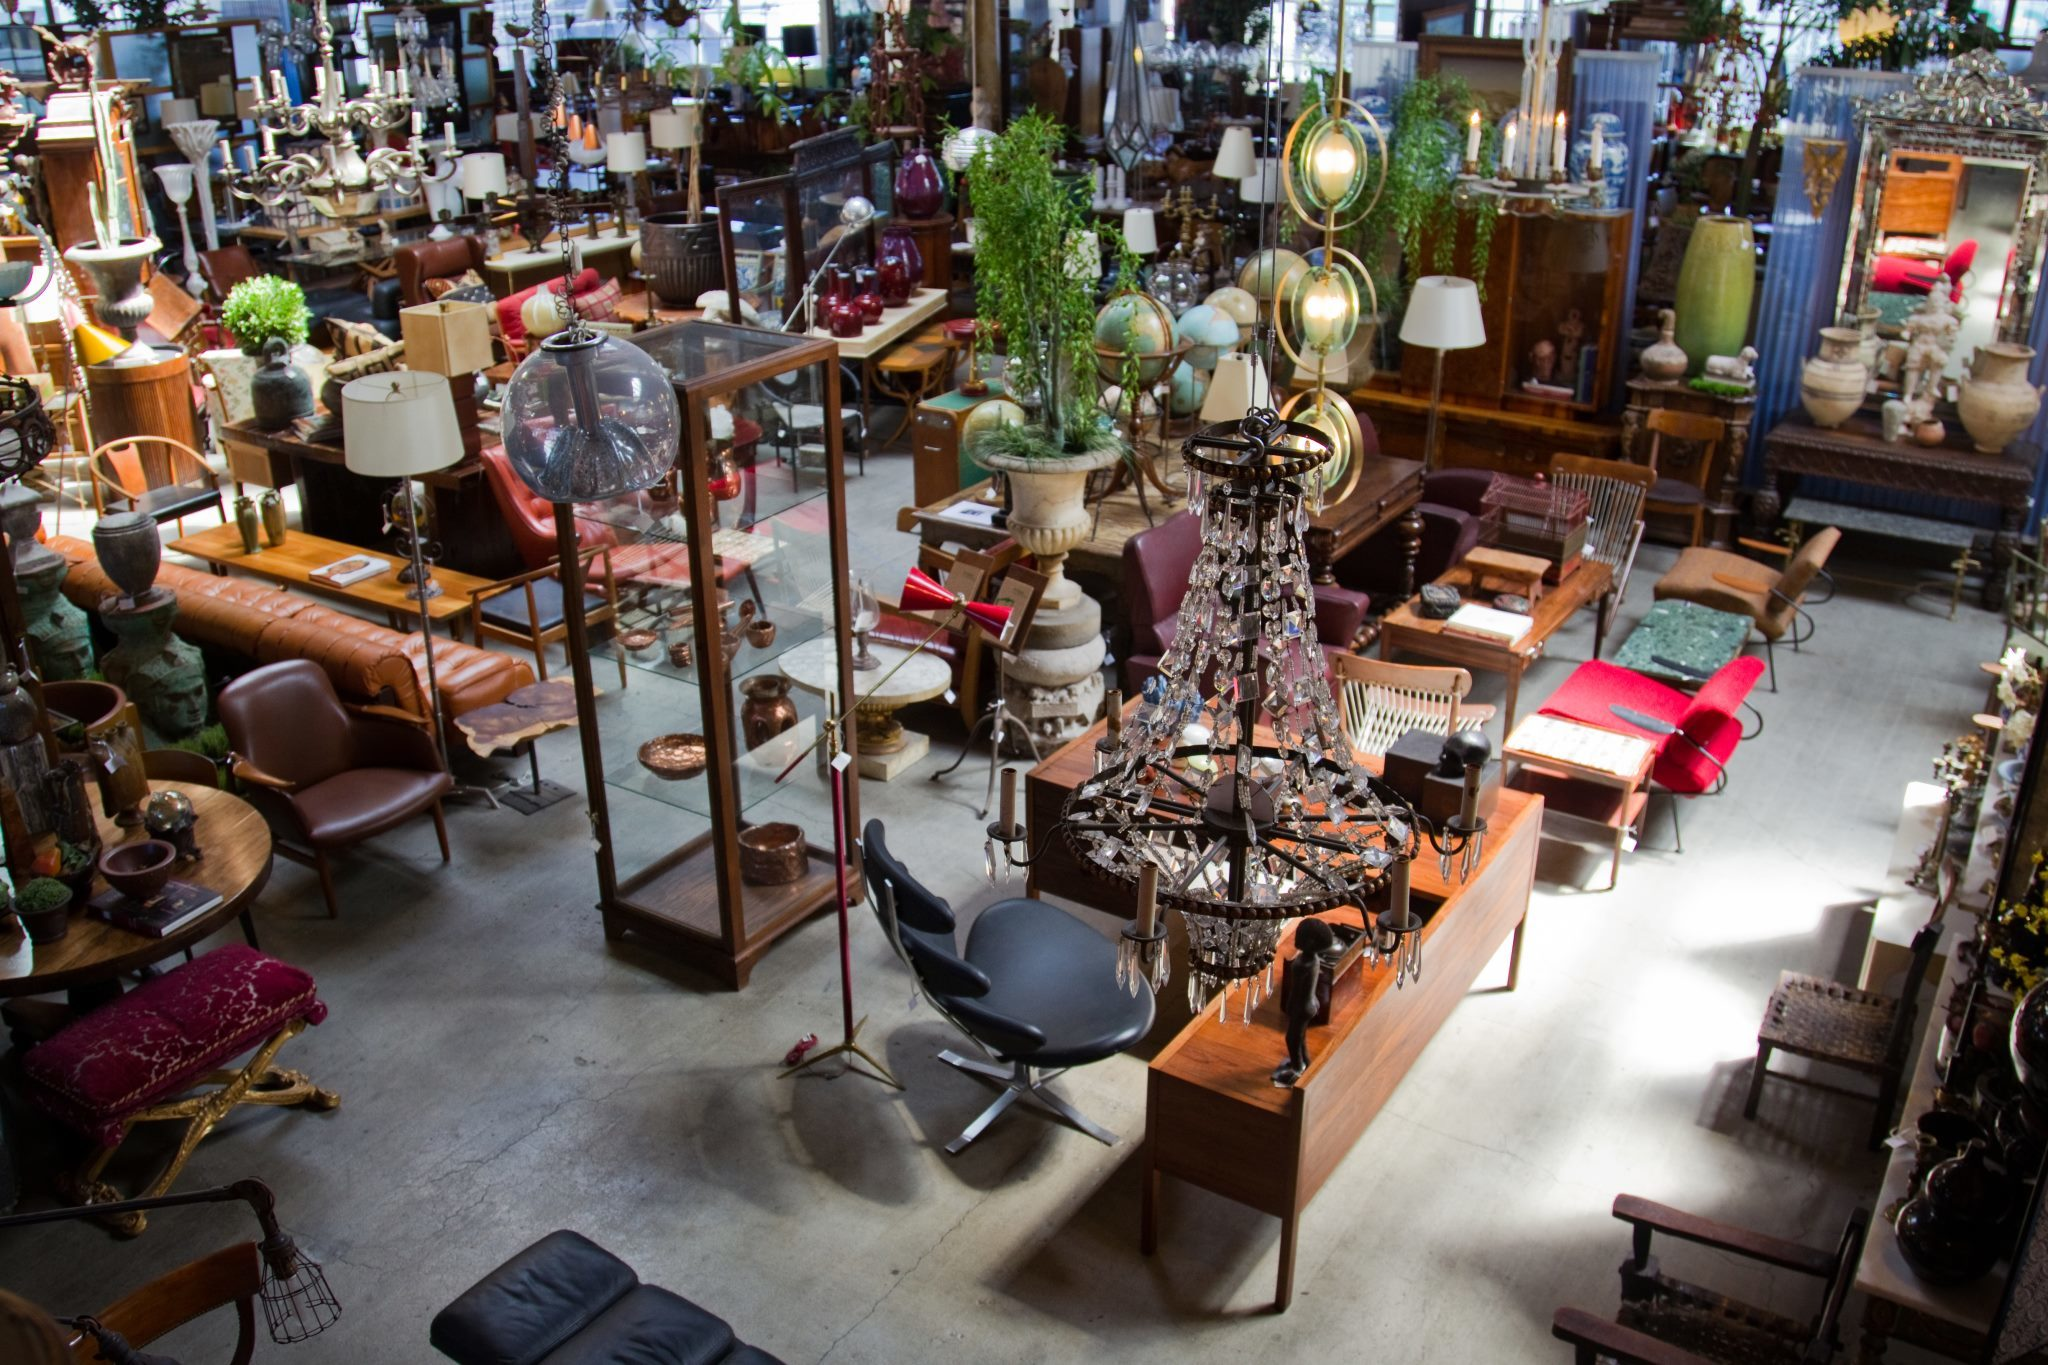 antique shops los angeles Best antique stores in Los Angeles for hidden gems antique shops los angeles